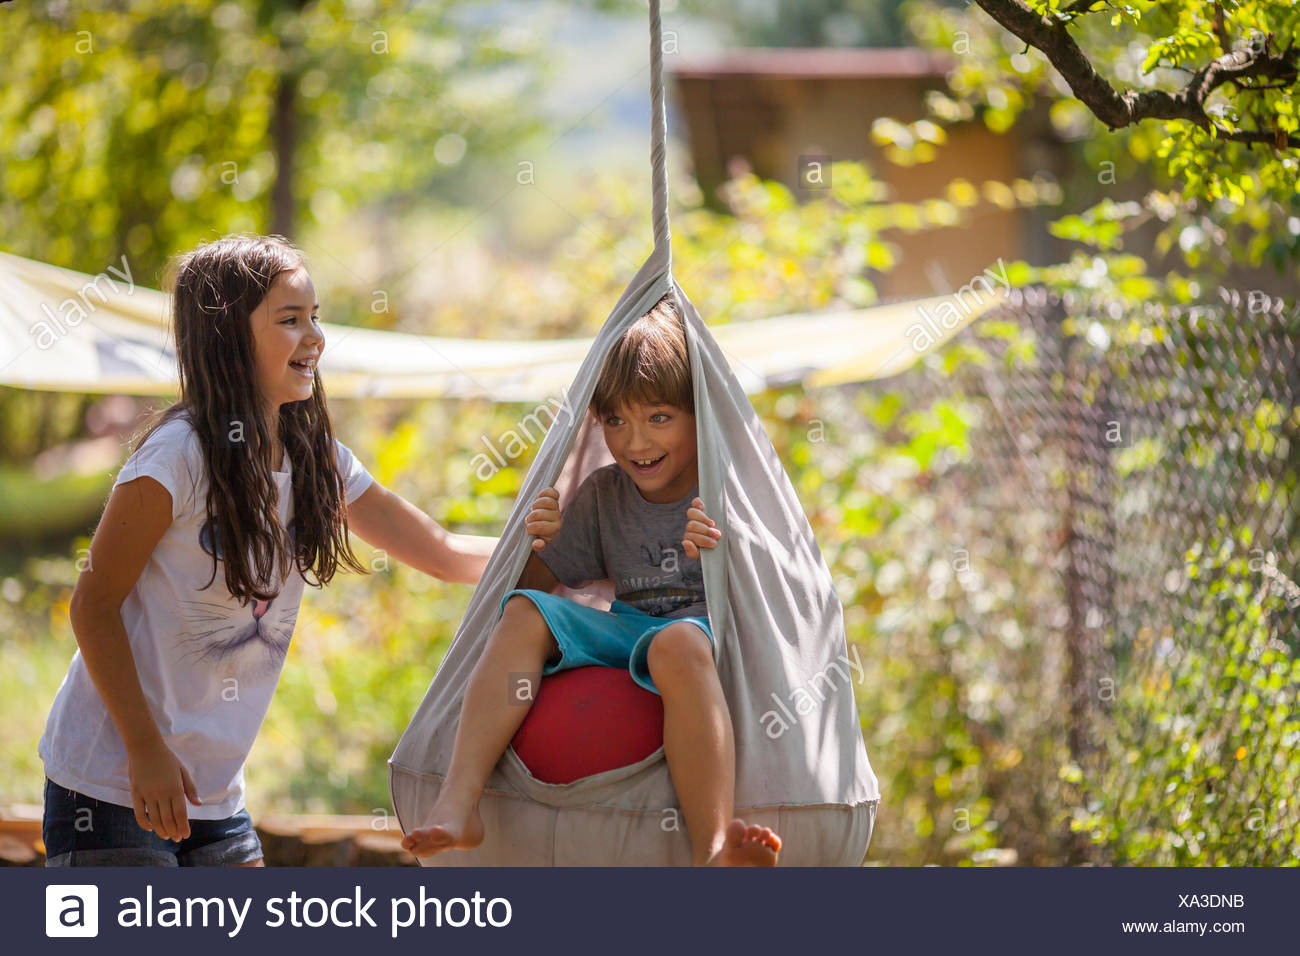 Boy and girl playing on a swing in the garden - Stock Image